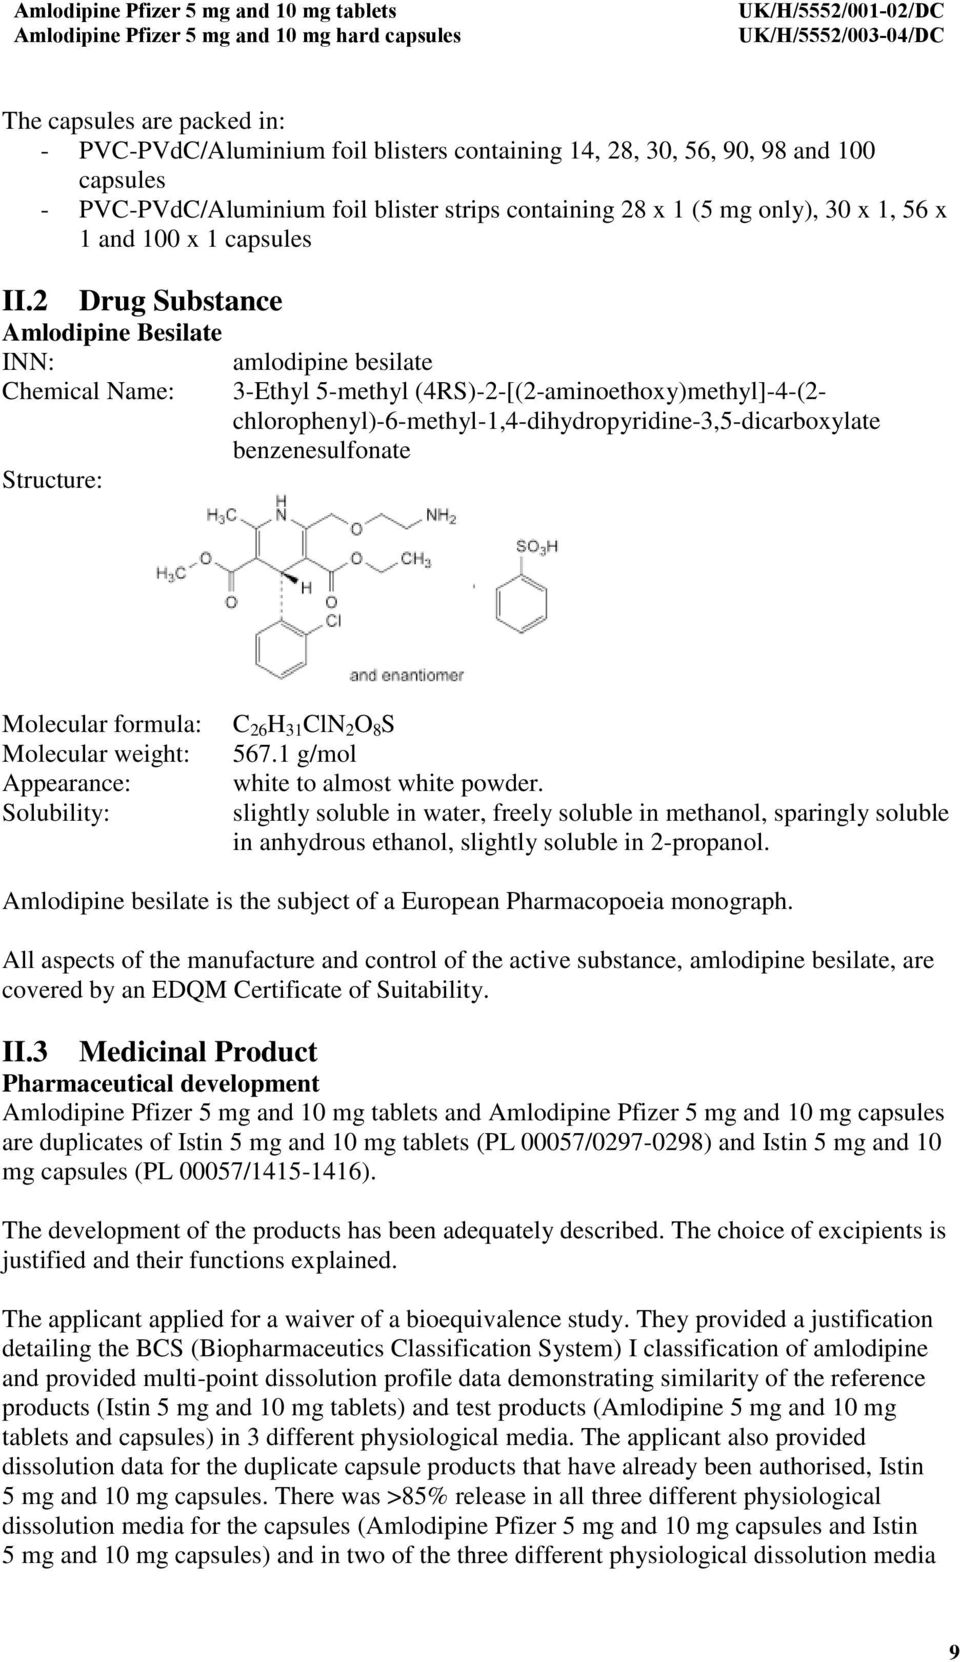 2 Drug Substance Amlodipine Besilate INN: amlodipine besilate Chemical Name: 3-Ethyl 5-methyl (4RS)-2-[(2-aminoethoxy)methyl]-4-(2- chlorophenyl)-6-methyl-1,4-dihydropyridine-3,5-dicarboxylate